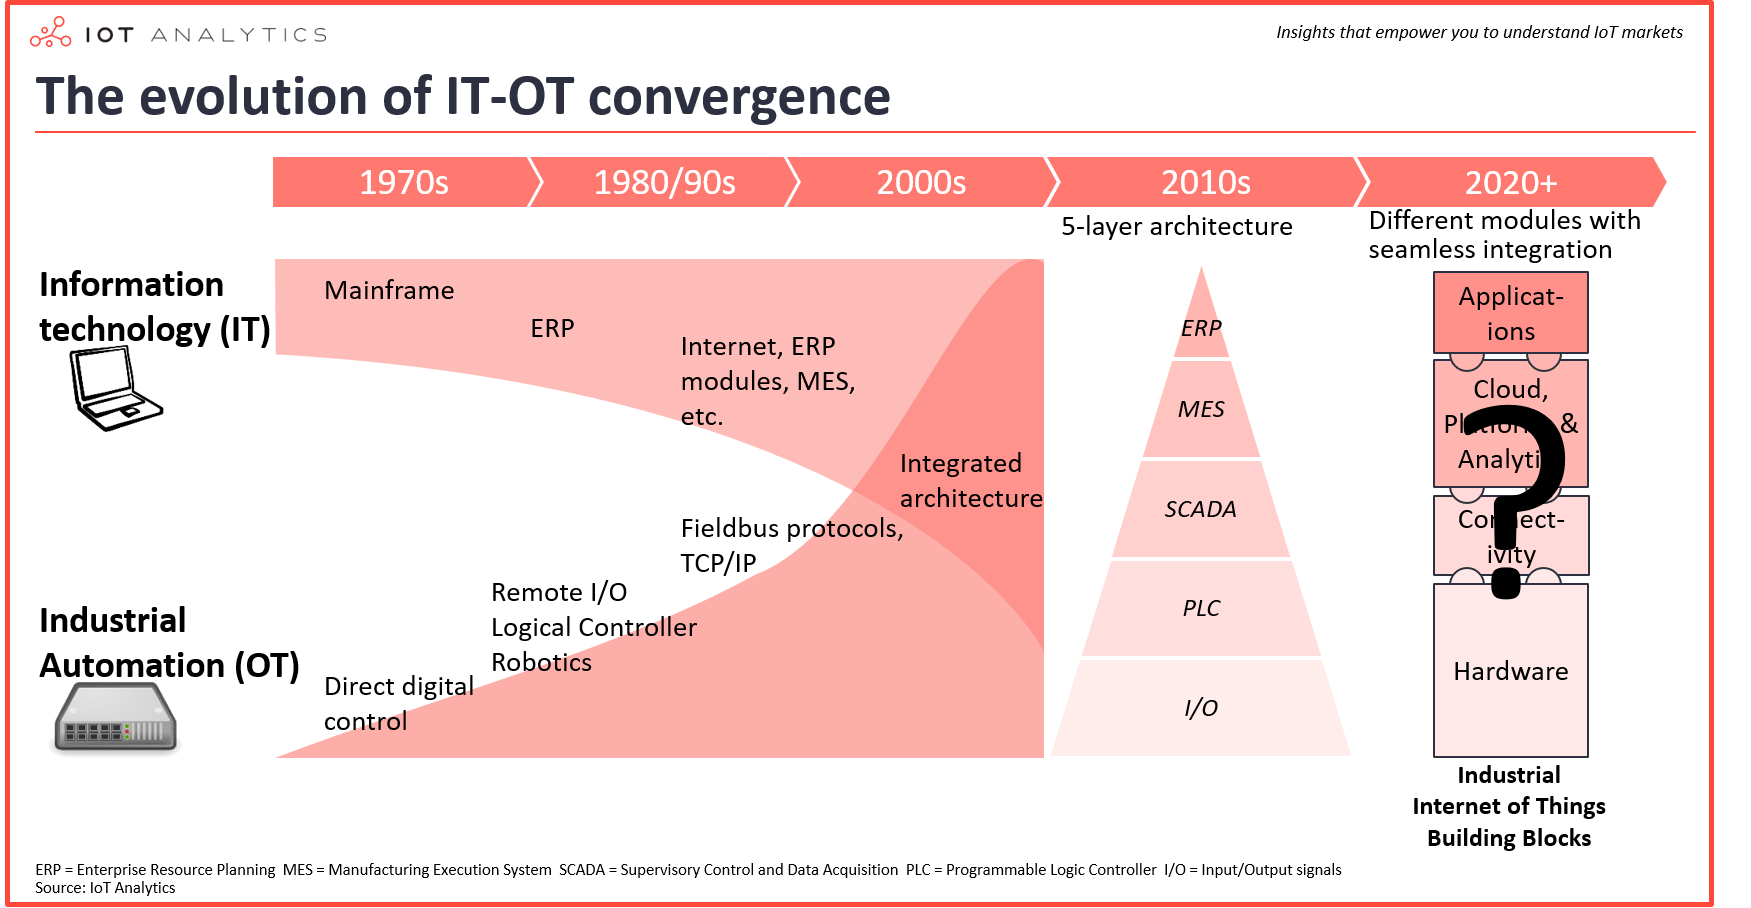 ind conn evolution of it ot convergence-min1